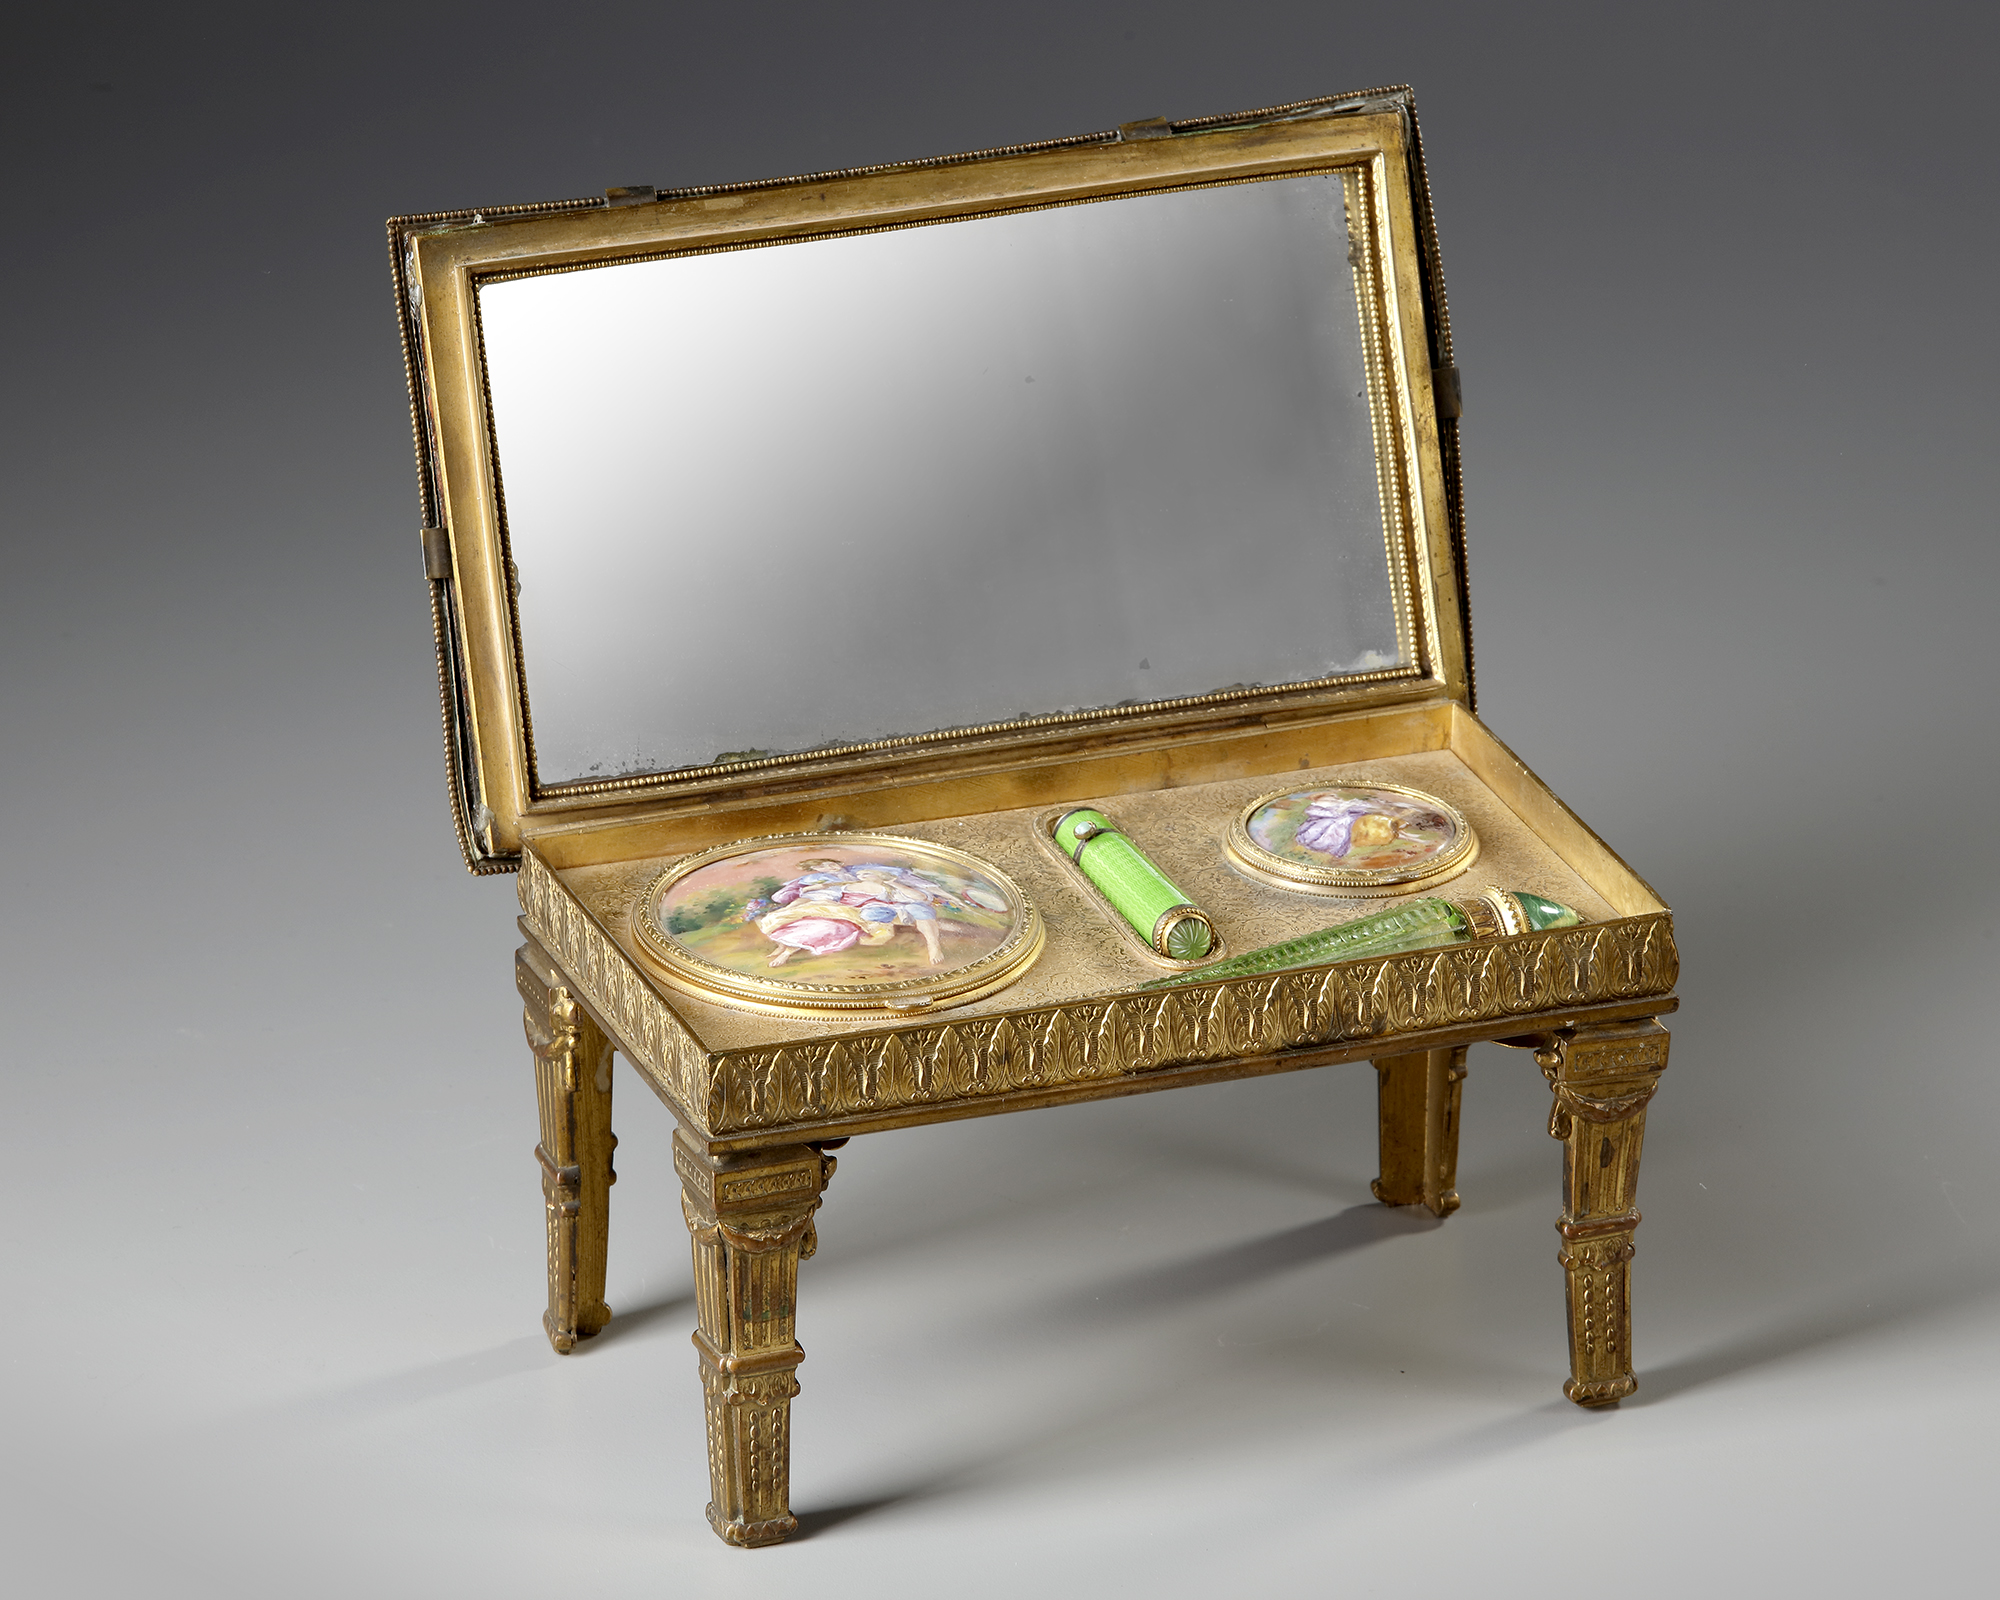 AN AUSTRIAN ENAMEL MINIATURE TABLE WITH PERFUME VIAL, LATE 19TH CENTURY - Image 2 of 5